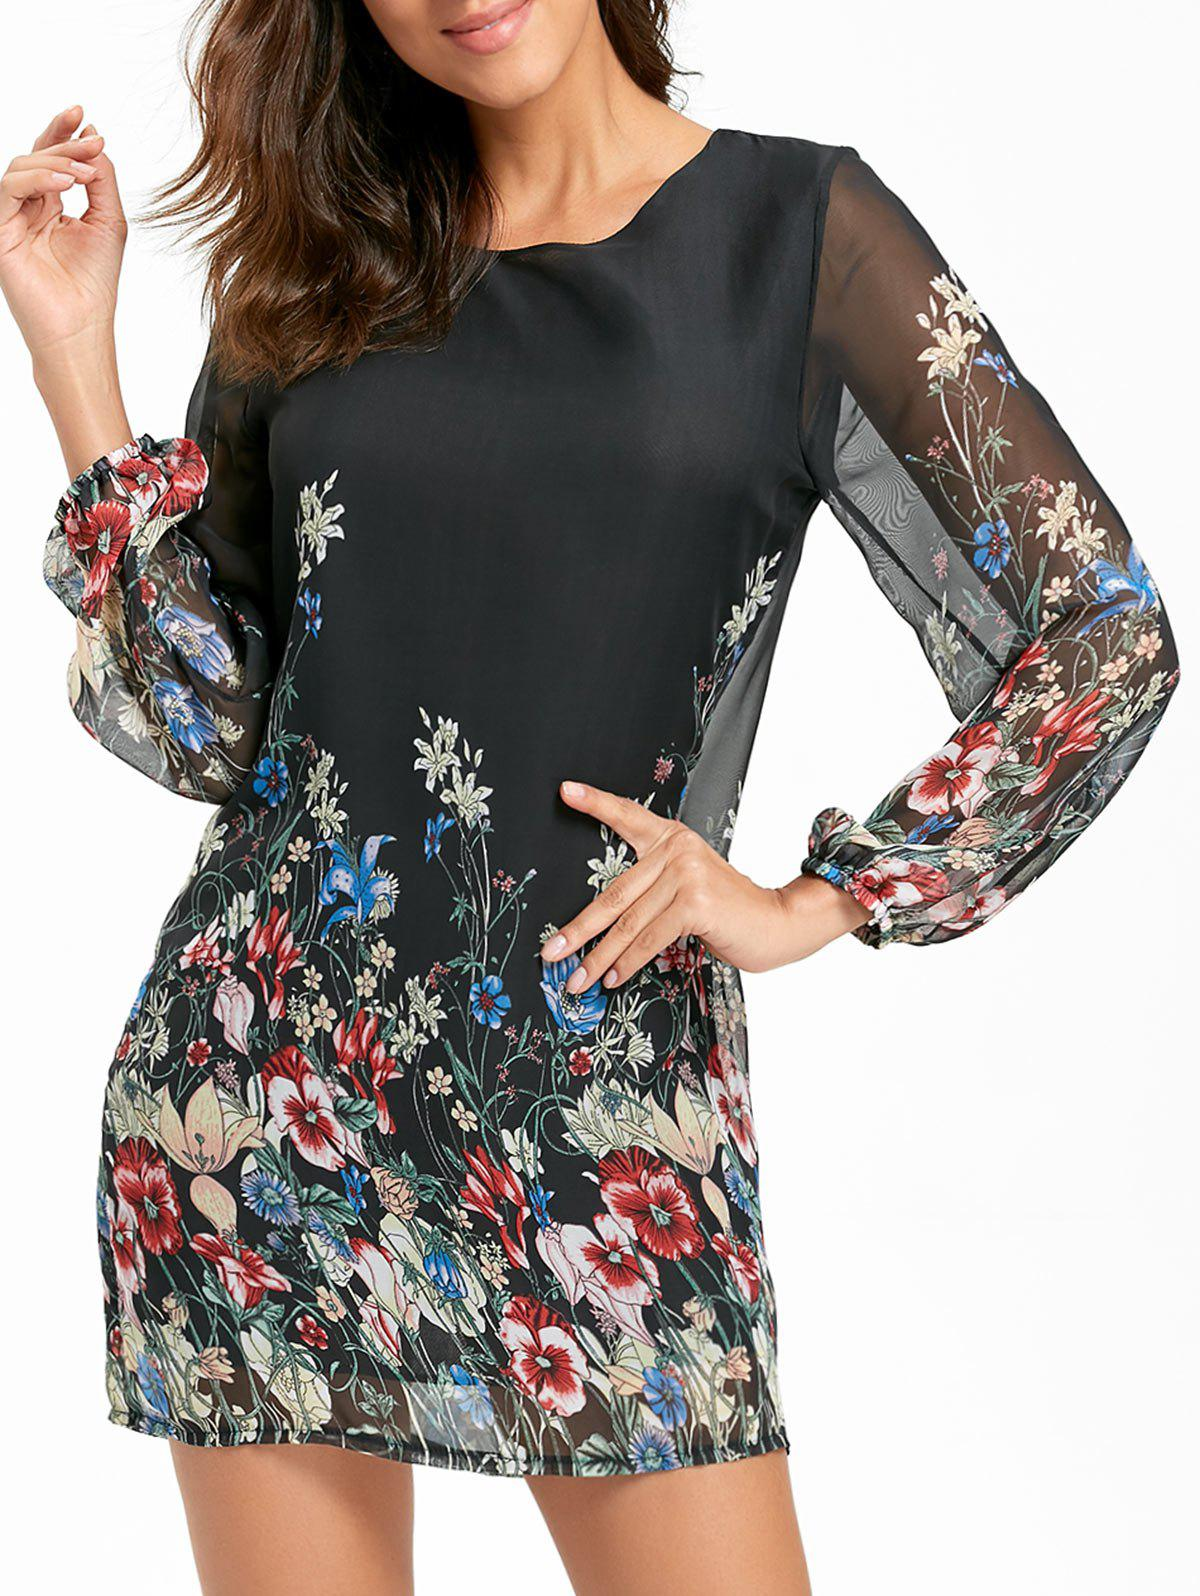 Sheer Long Sleeve Floral Mini Chiffon DressWOMEN<br><br>Size: M; Color: BLACK; Style: Brief; Material: Polyester; Silhouette: Shift; Dresses Length: Mini; Neckline: Round Collar; Sleeve Length: Long Sleeves; Pattern Type: Floral; With Belt: No; Season: Fall,Spring,Summer; Weight: 0.2200kg; Package Contents: 1 x Dress;